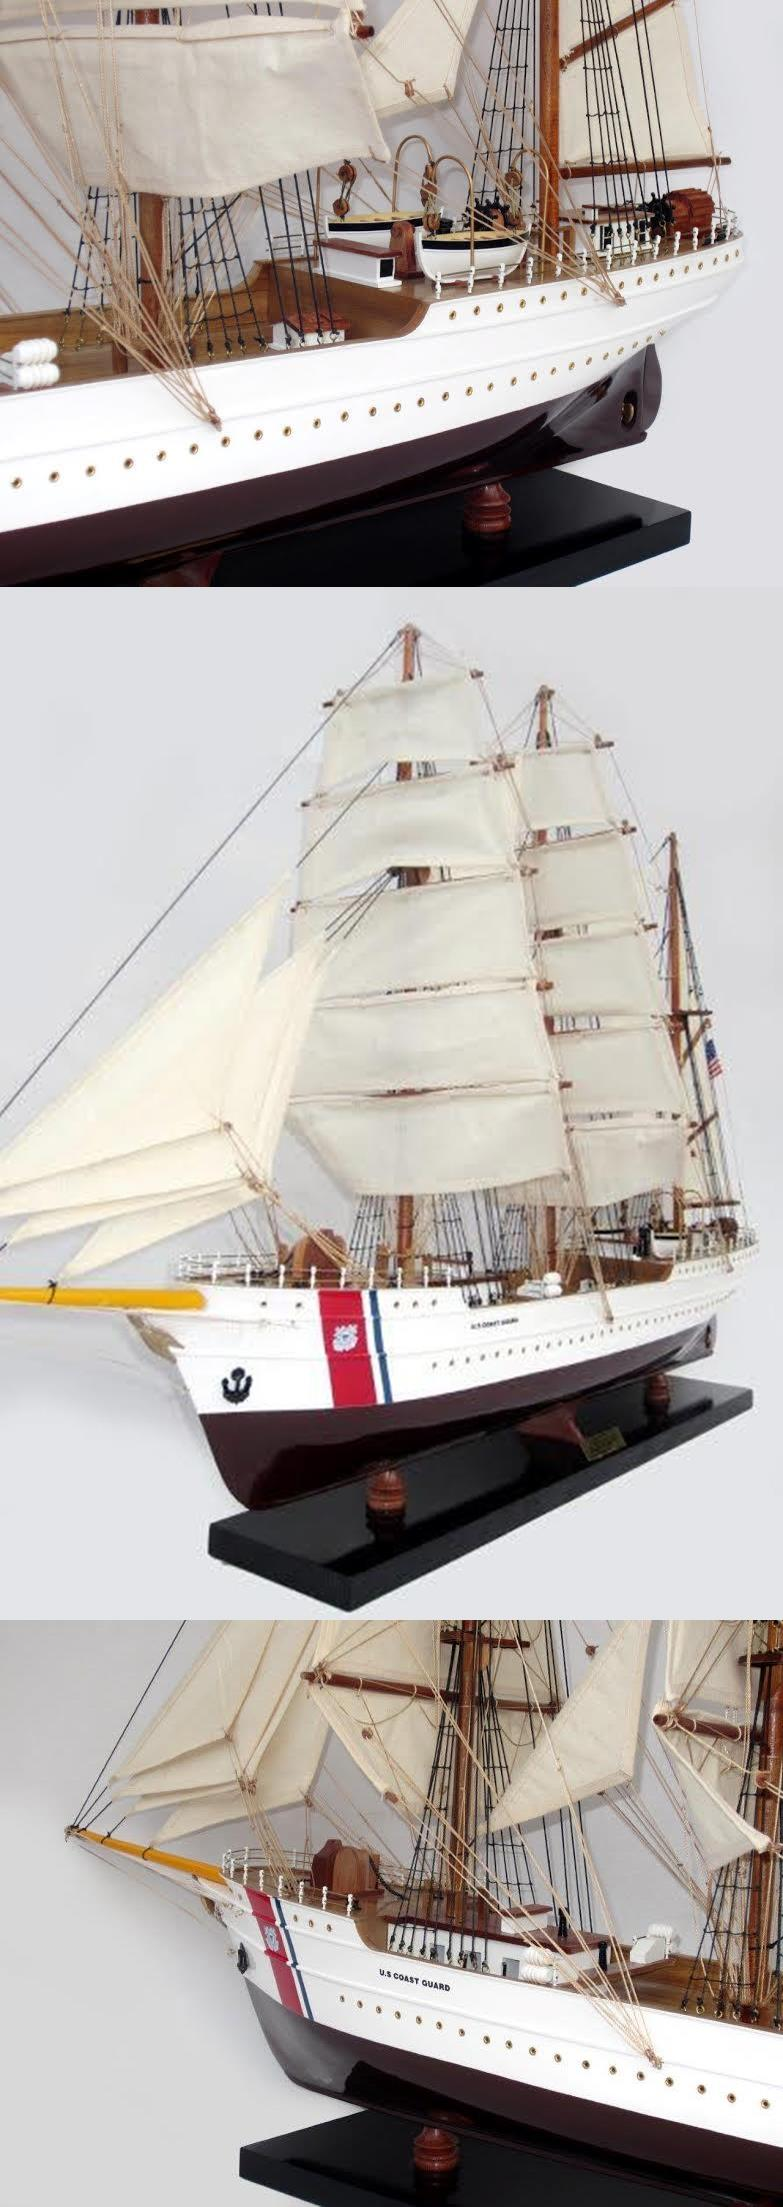 US COAST GUARD EAGLE SHIP MODEL (93CM)